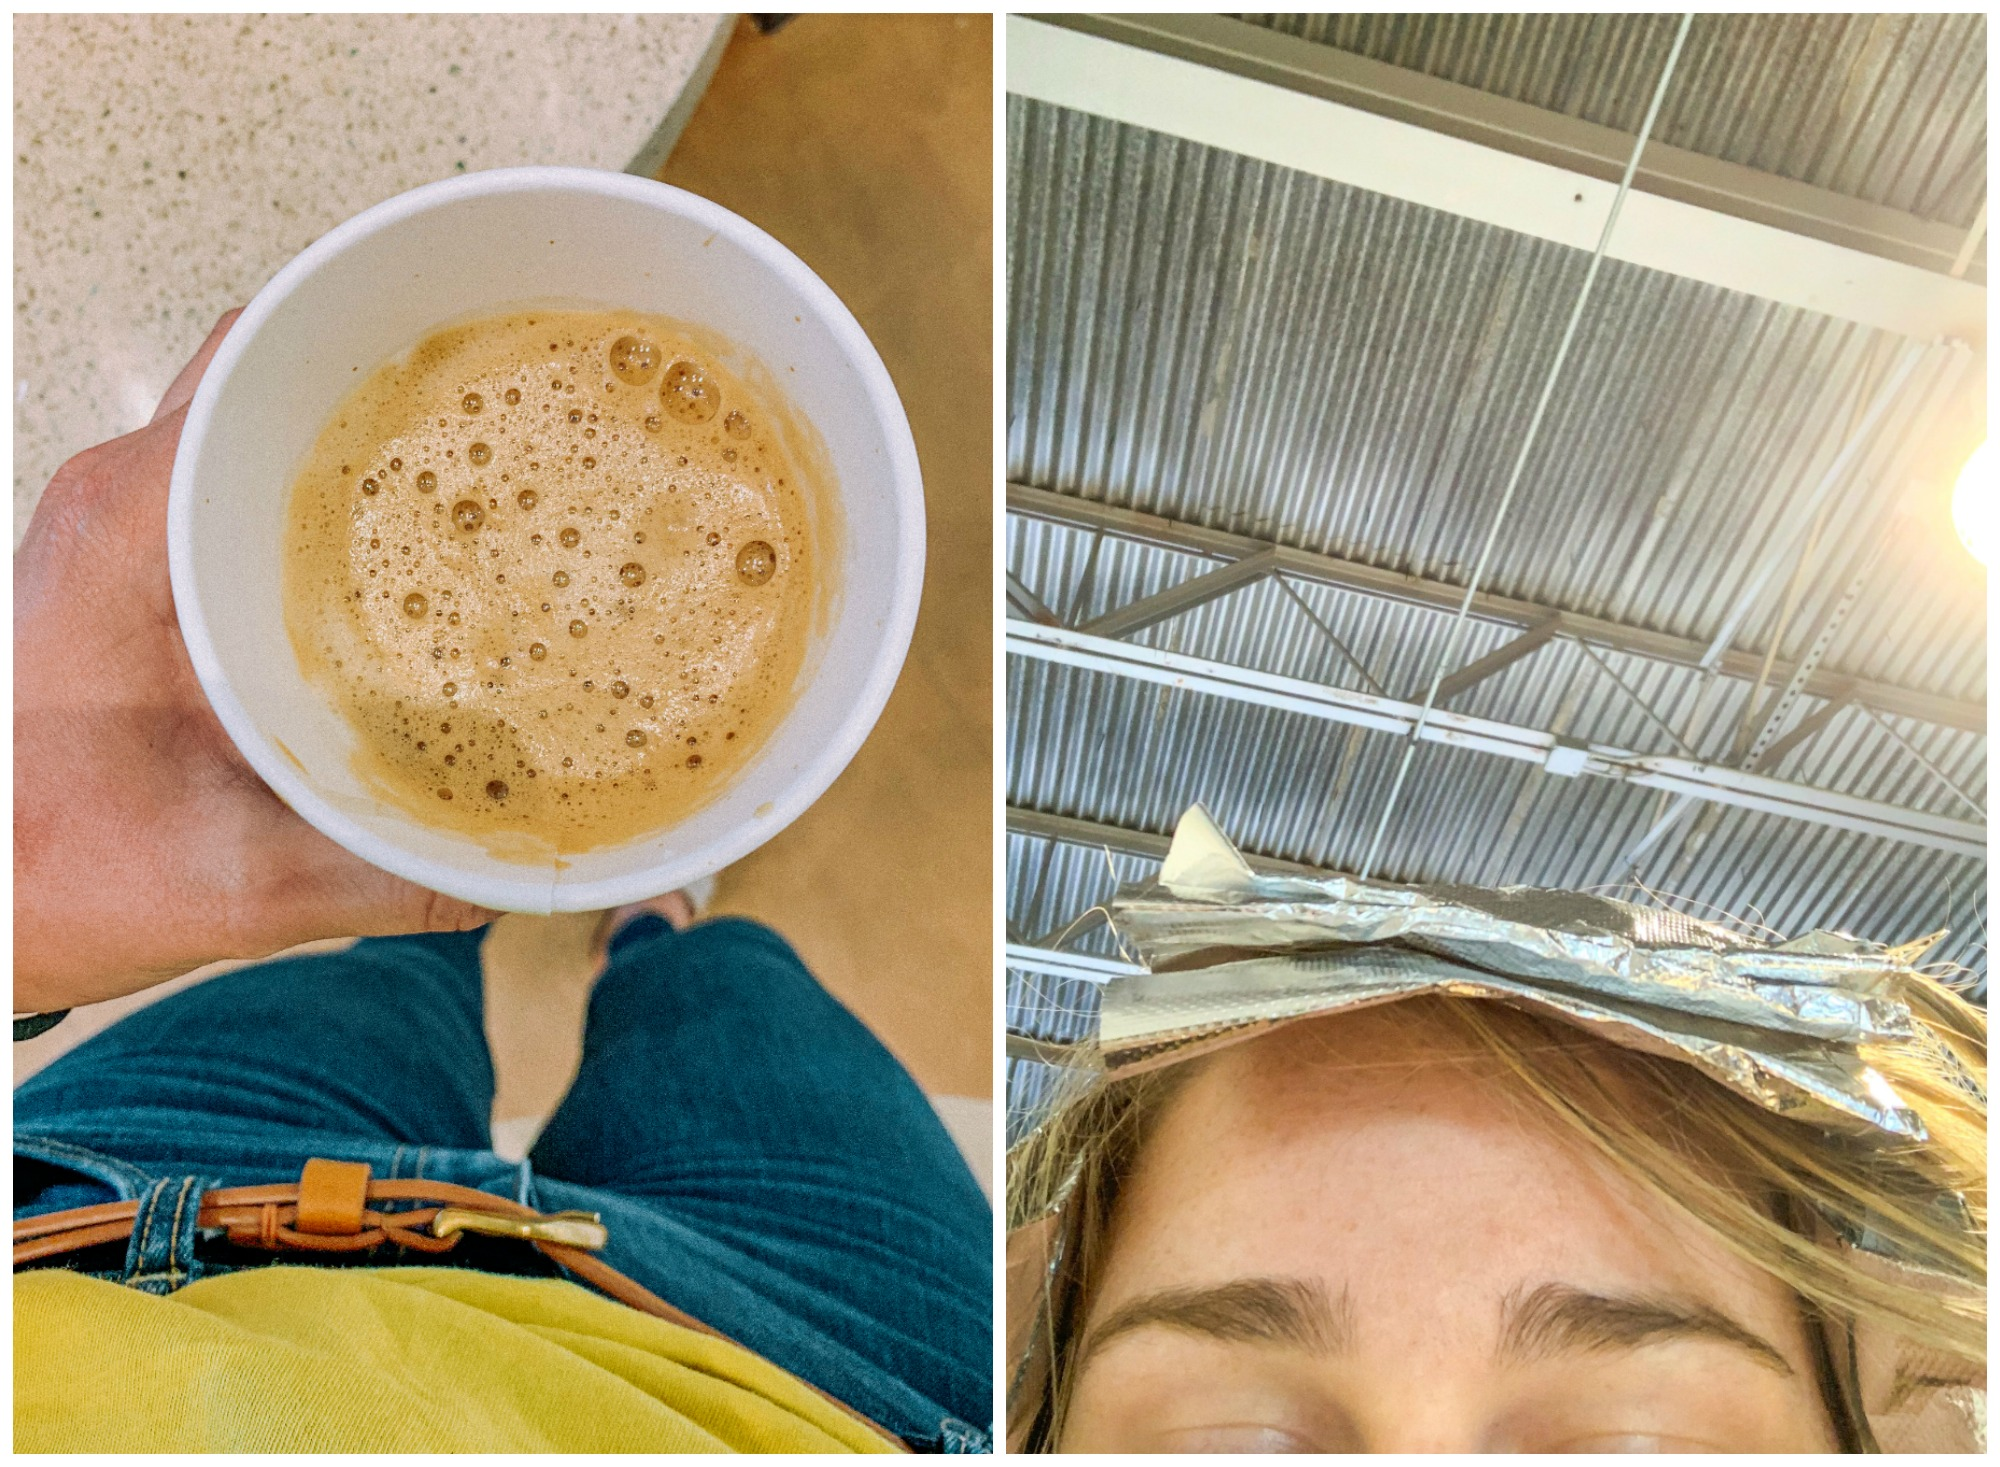 bee day, hair, coffee, Nordstrom, espresso, latte, cappucinno, vegan, mall, hair, aveda, mall, simply taralynn blog, hair